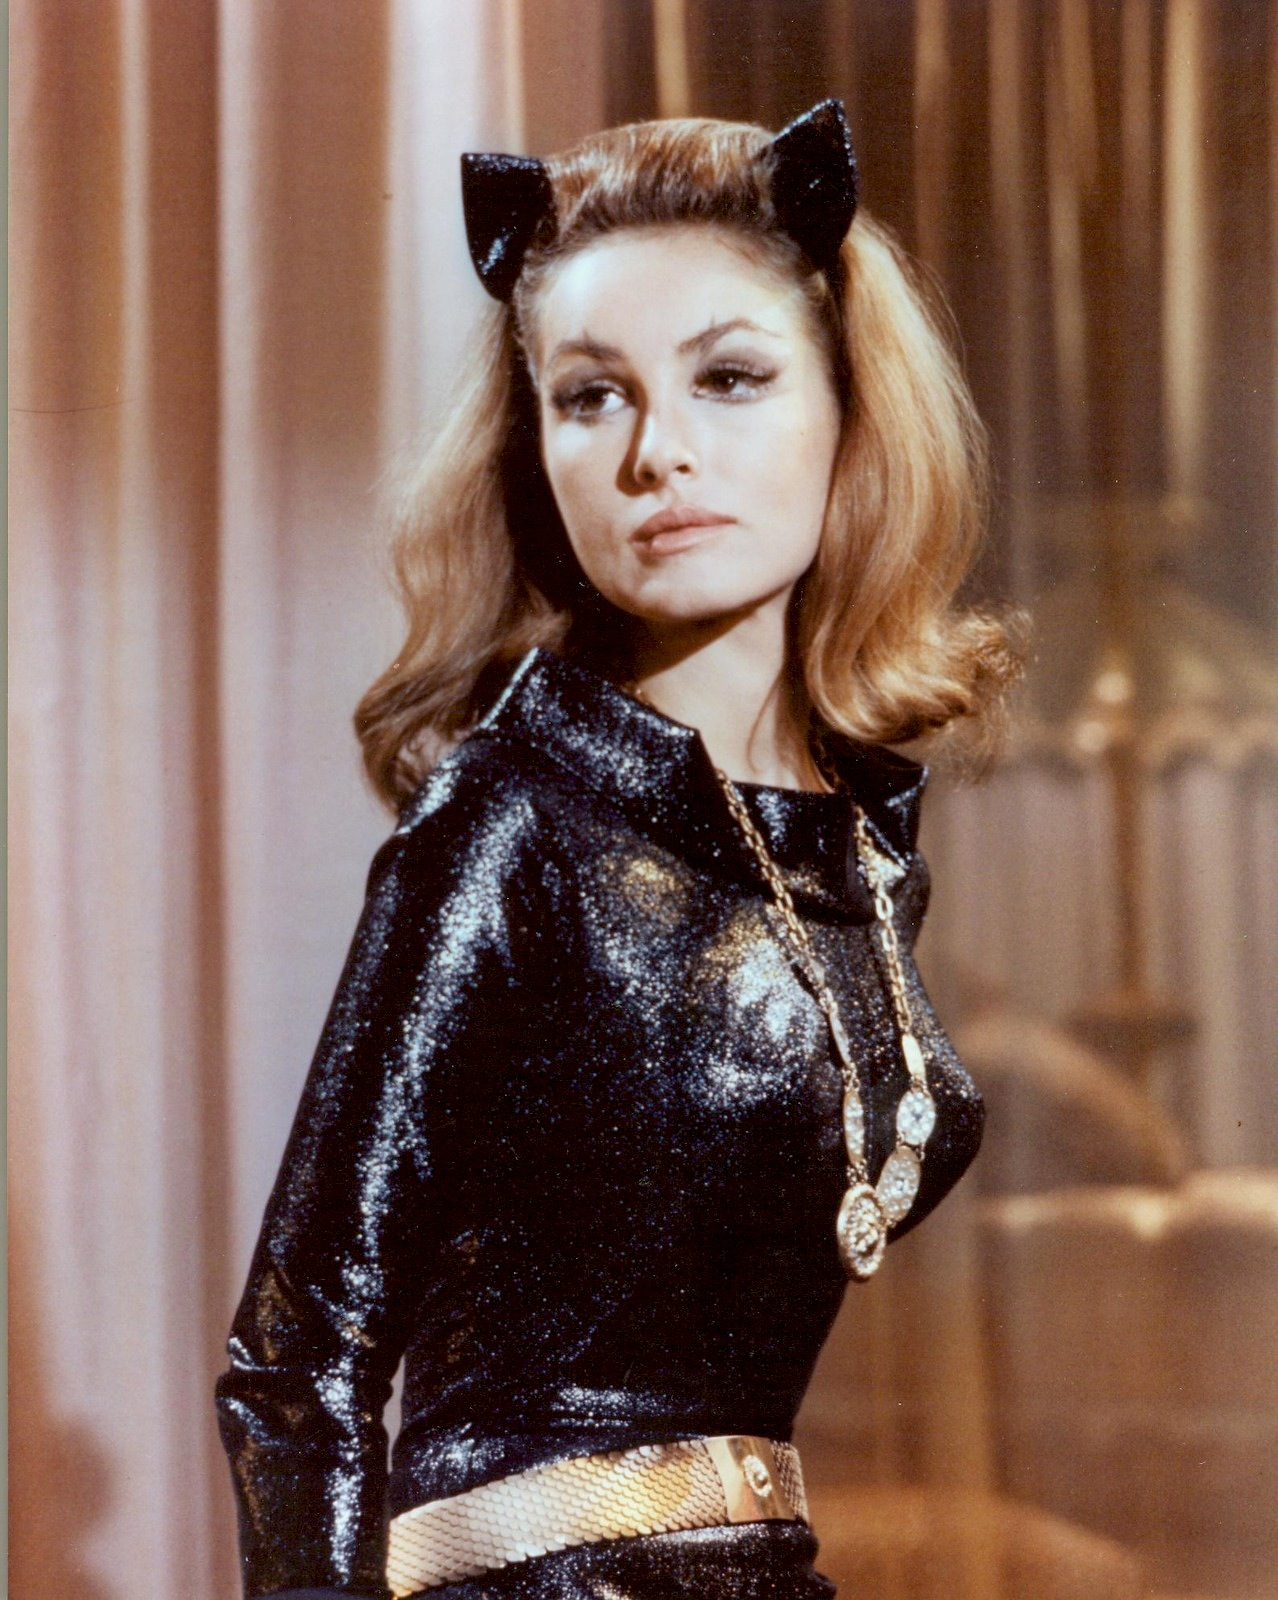 Julie Newmar Catwoman Poster More Julie Newmar as Catwoman